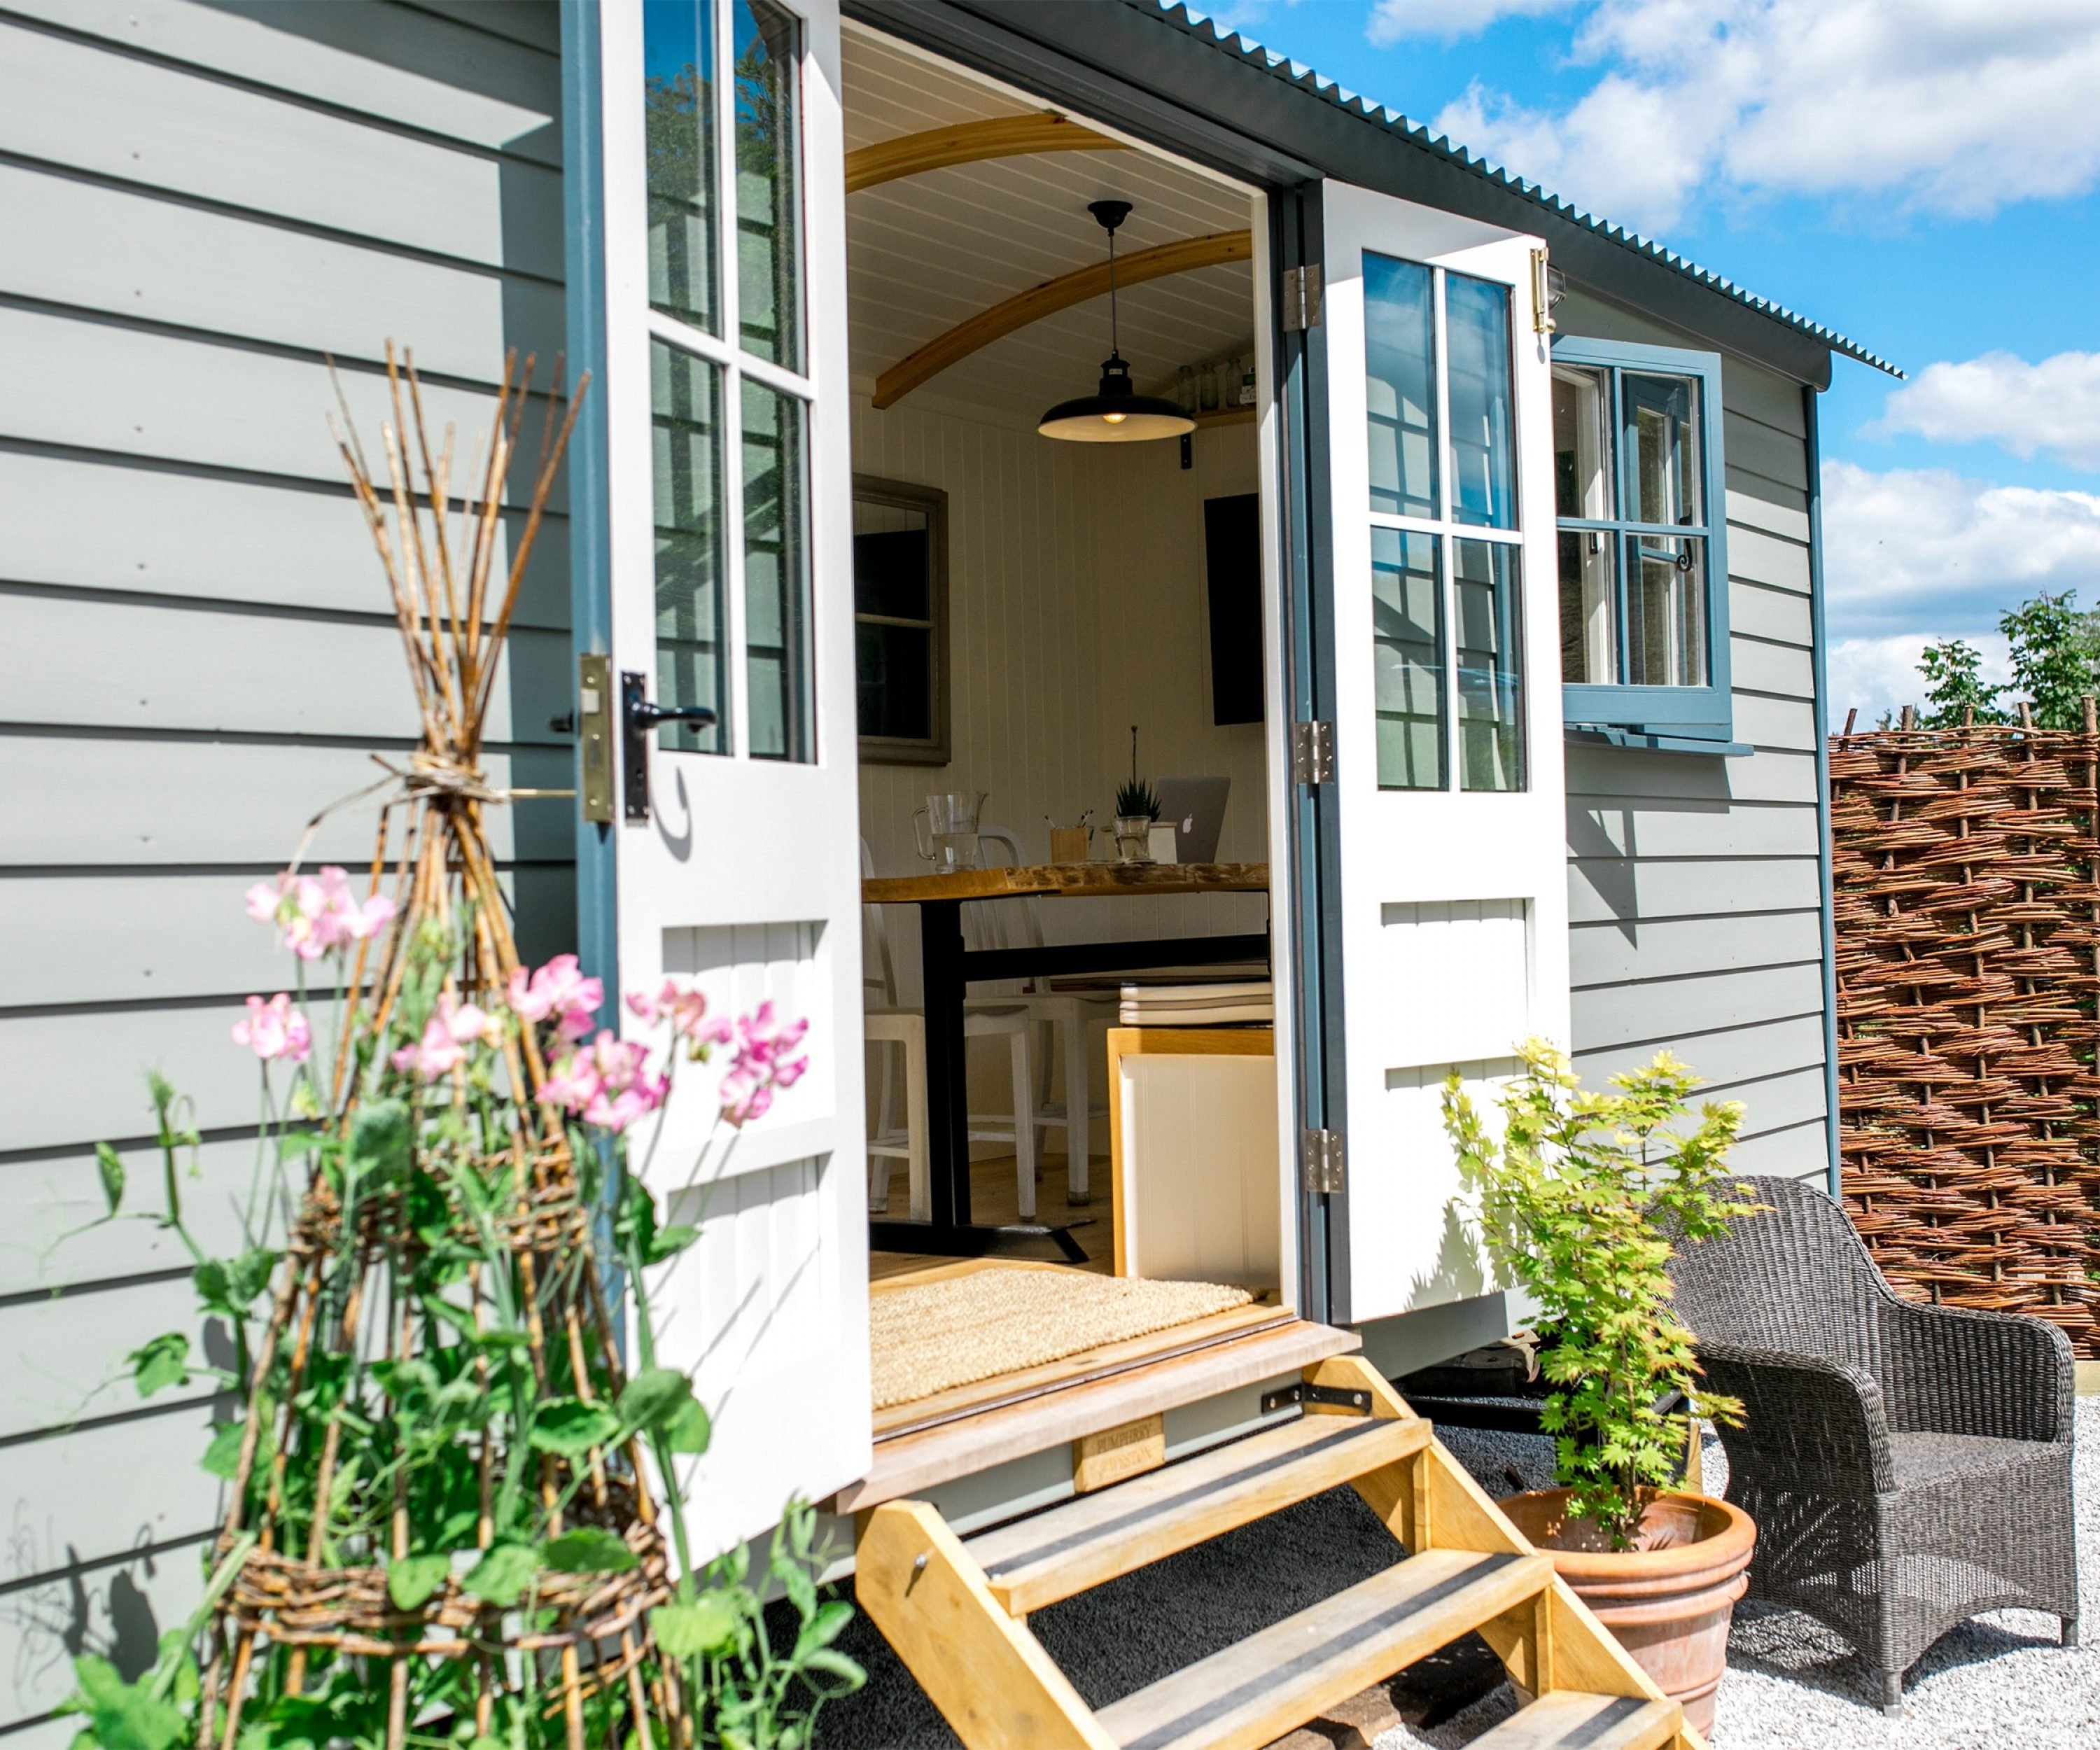 Open double doors on a renovated shepherd's hut with flowers growing outside.